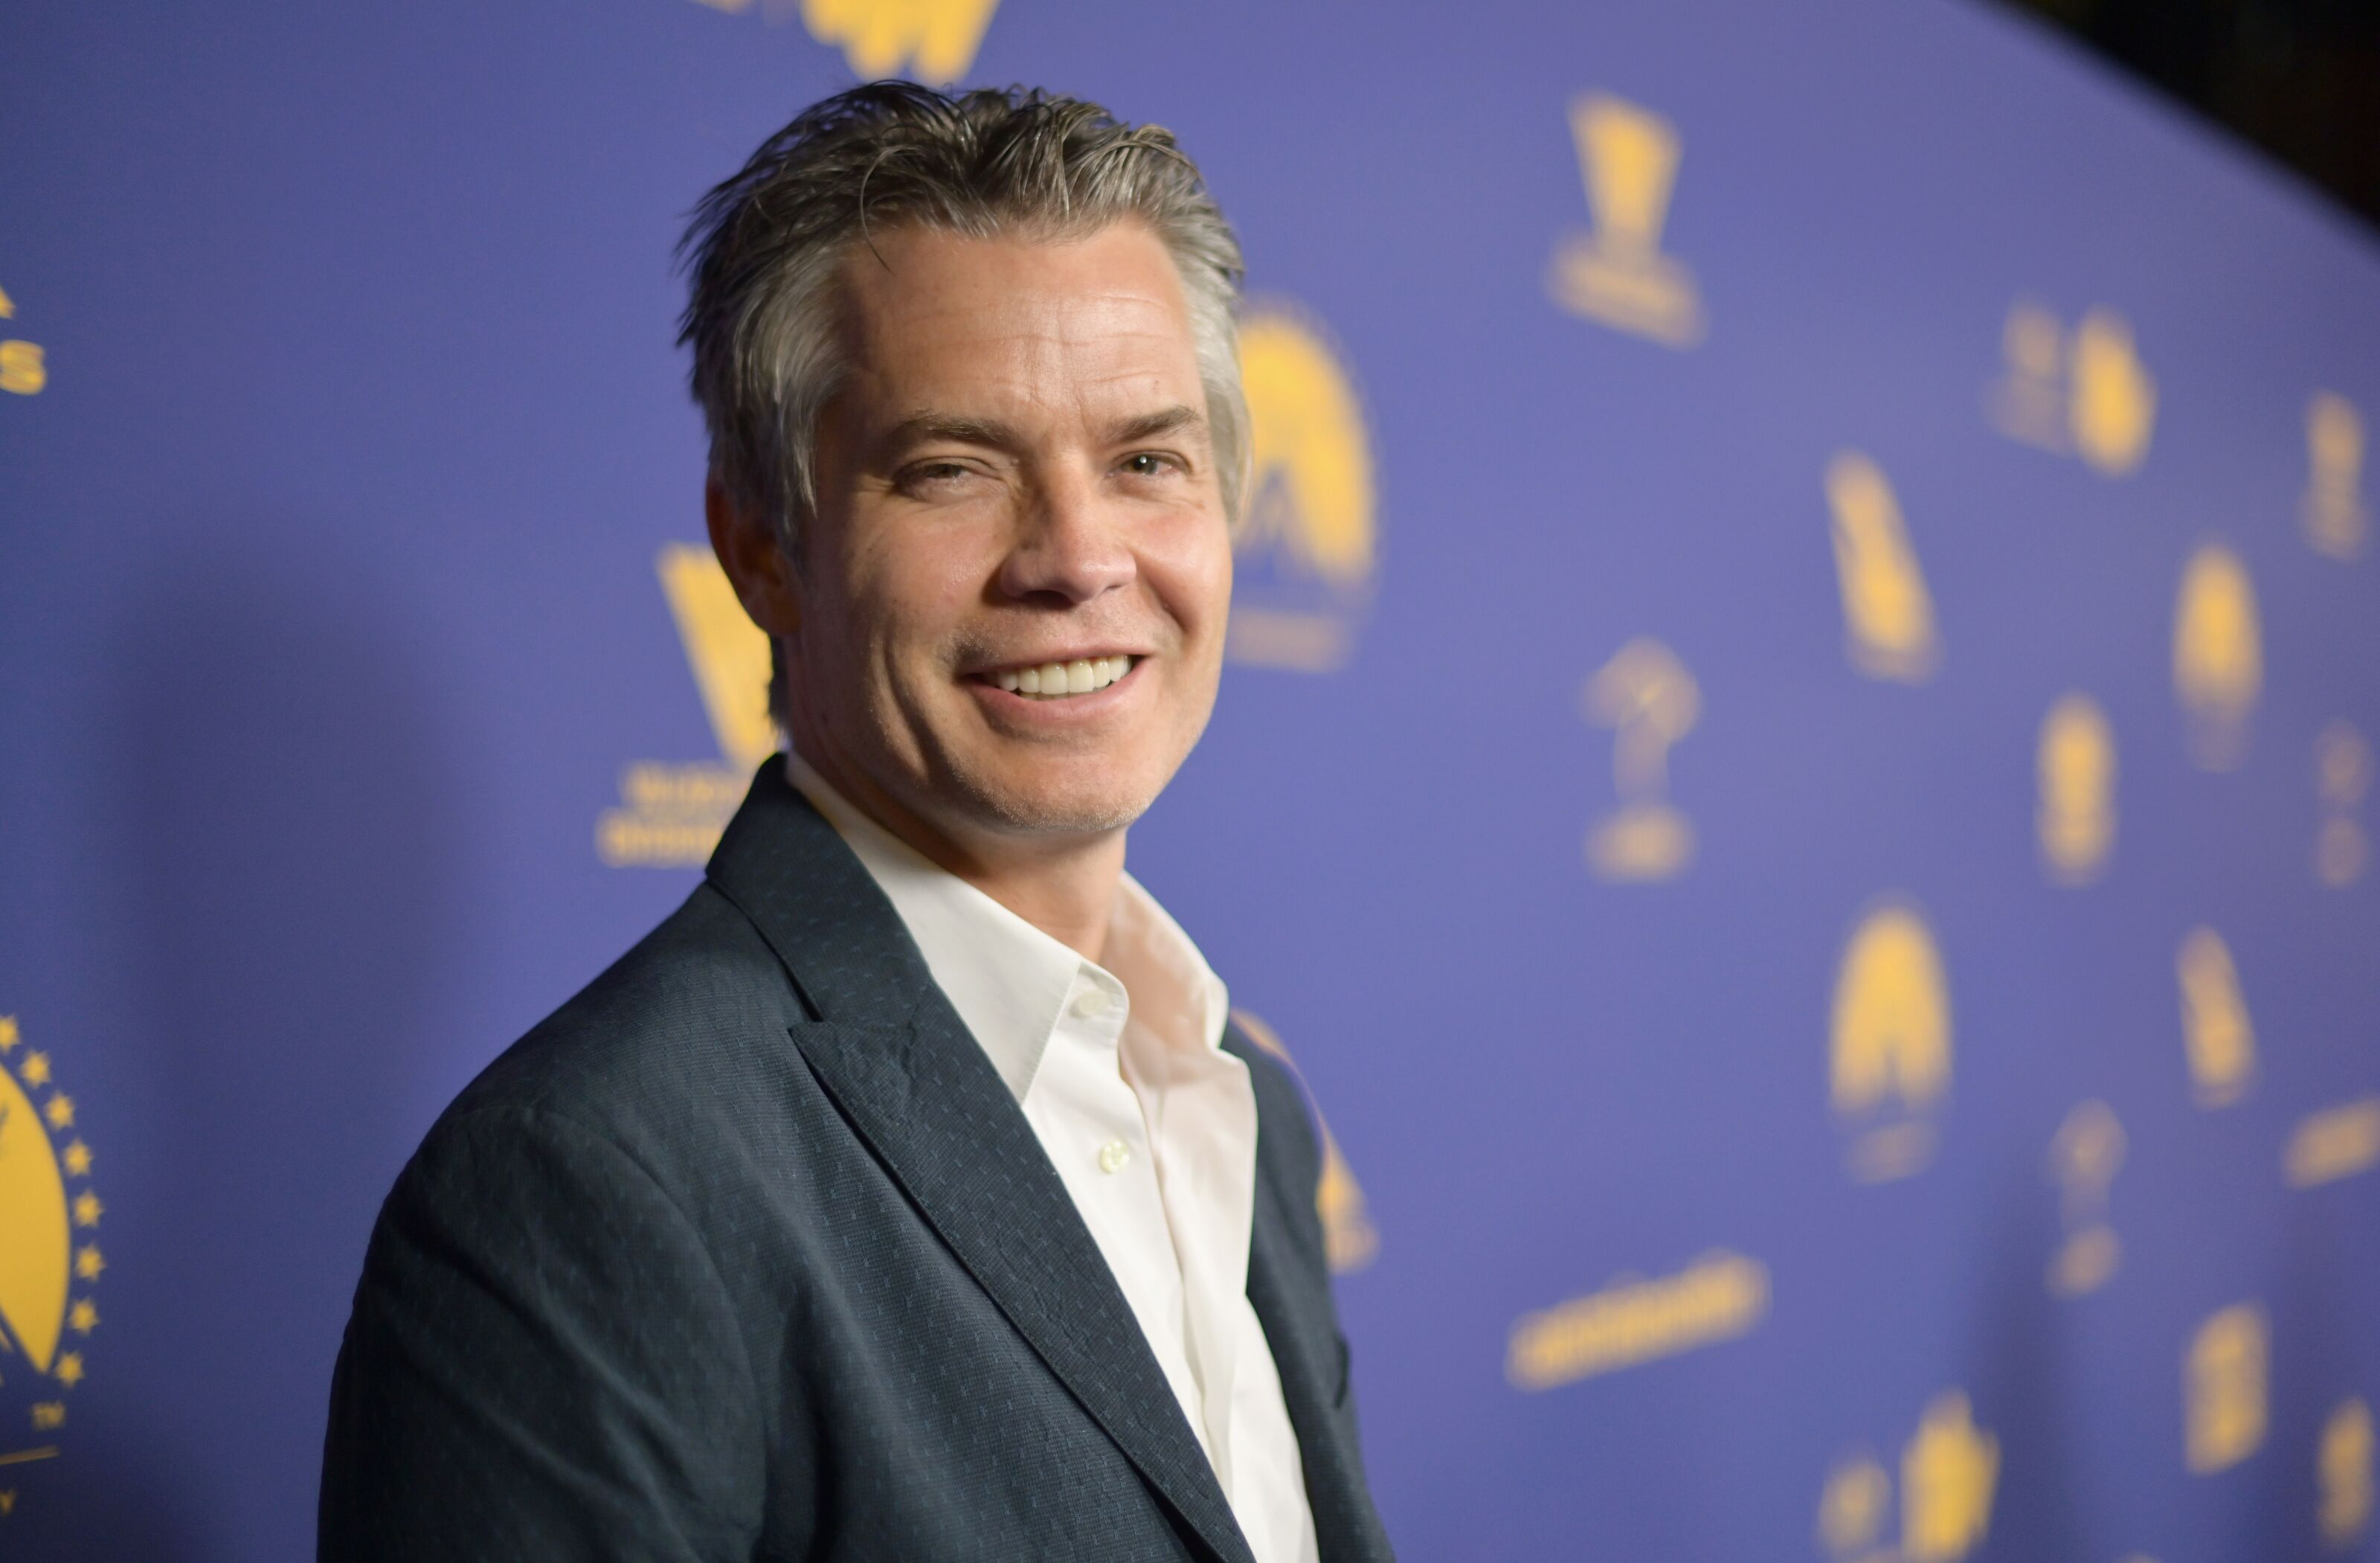 Fargo: Timothy Olyphant is all set to star in season 4